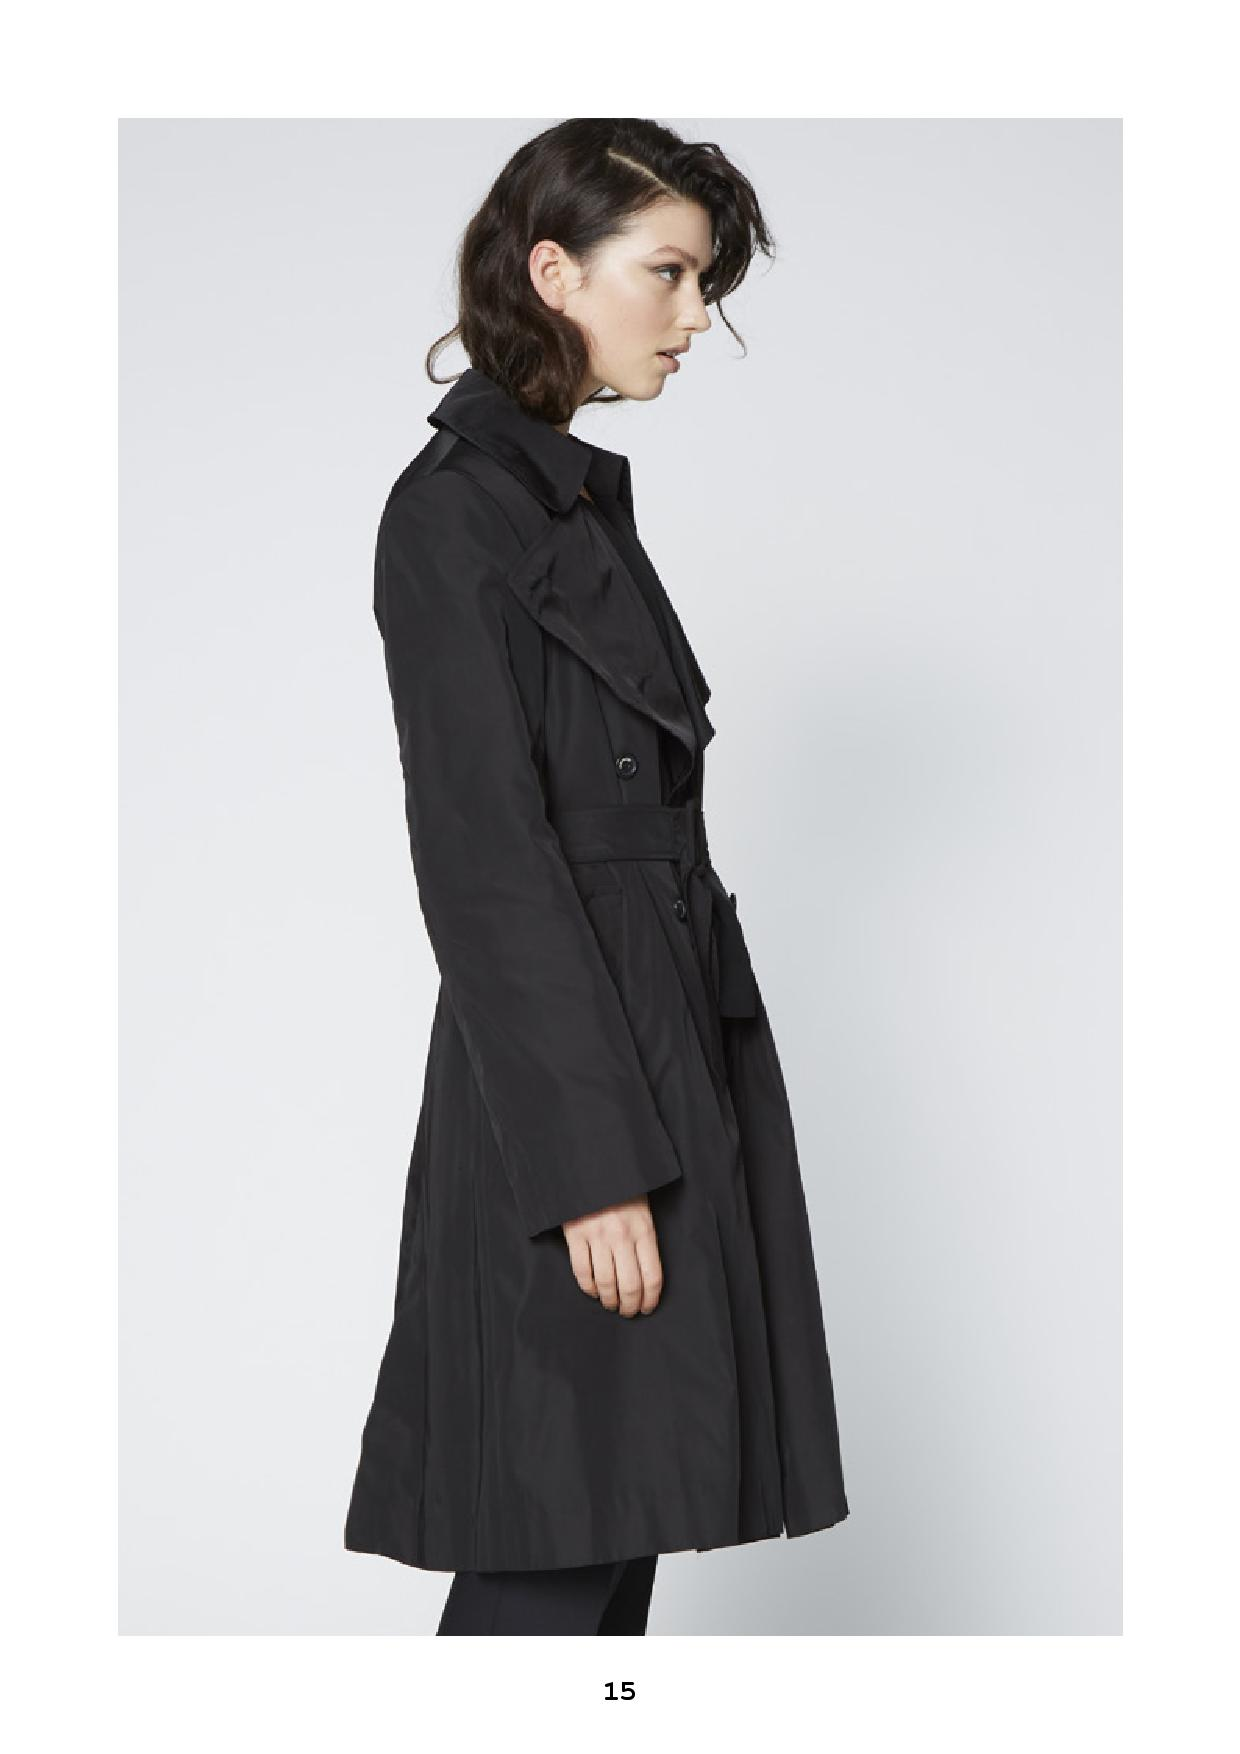 aw17 women s keypieces-page-016